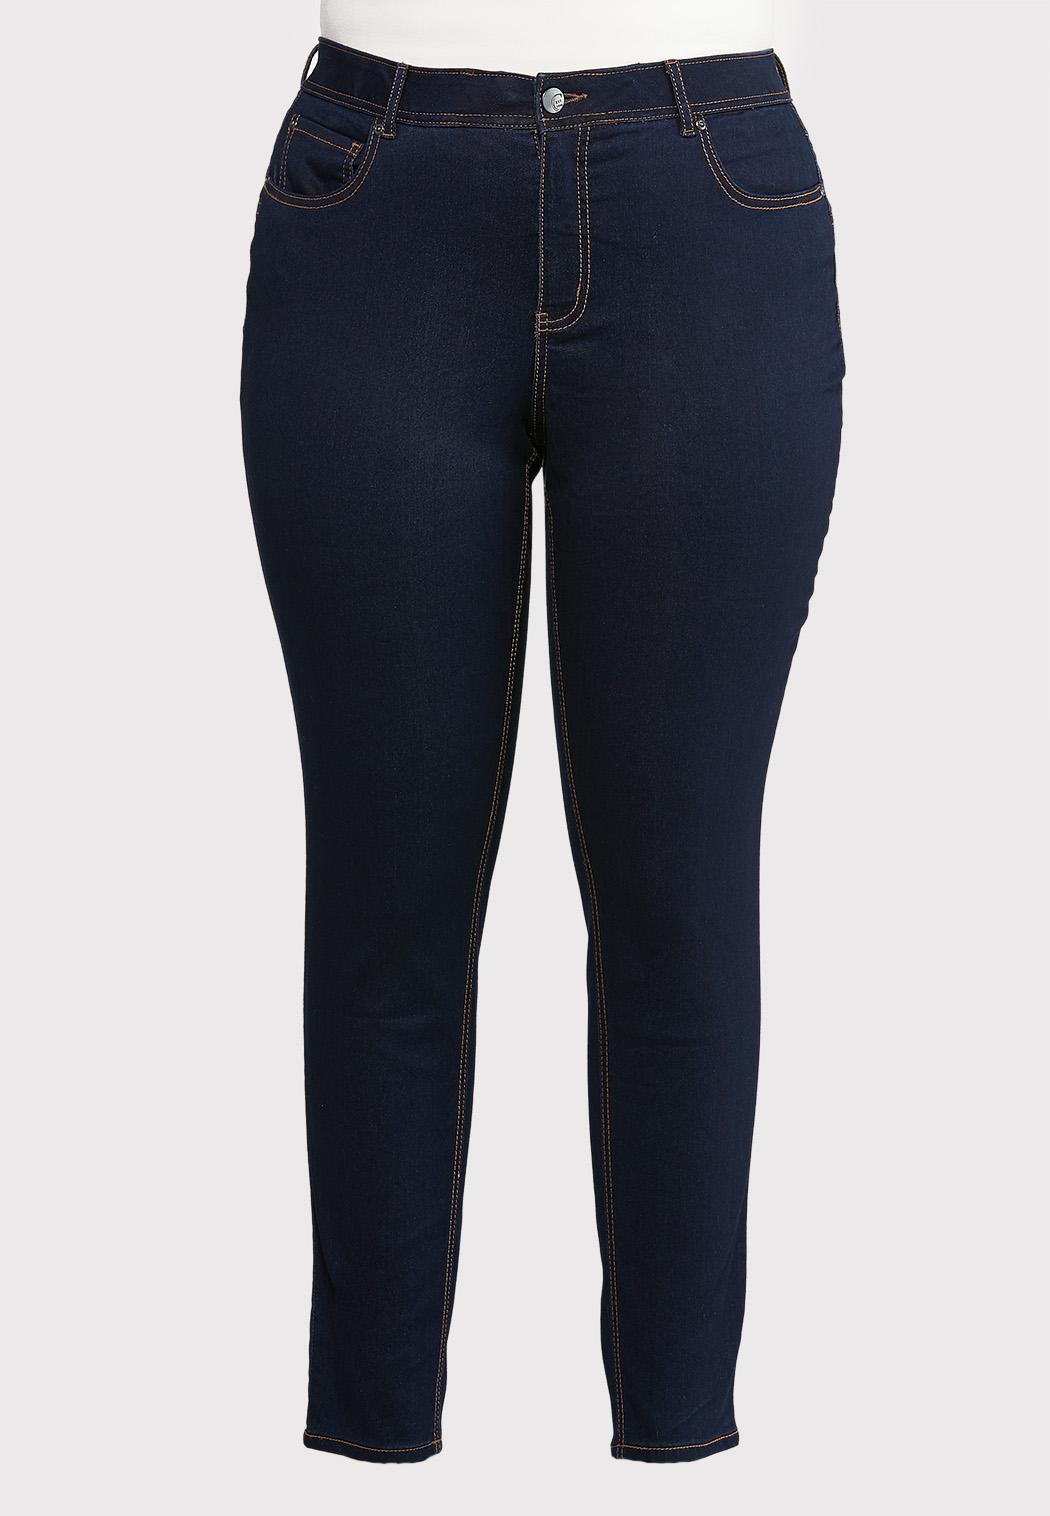 Plus Size The Perfect Jeans